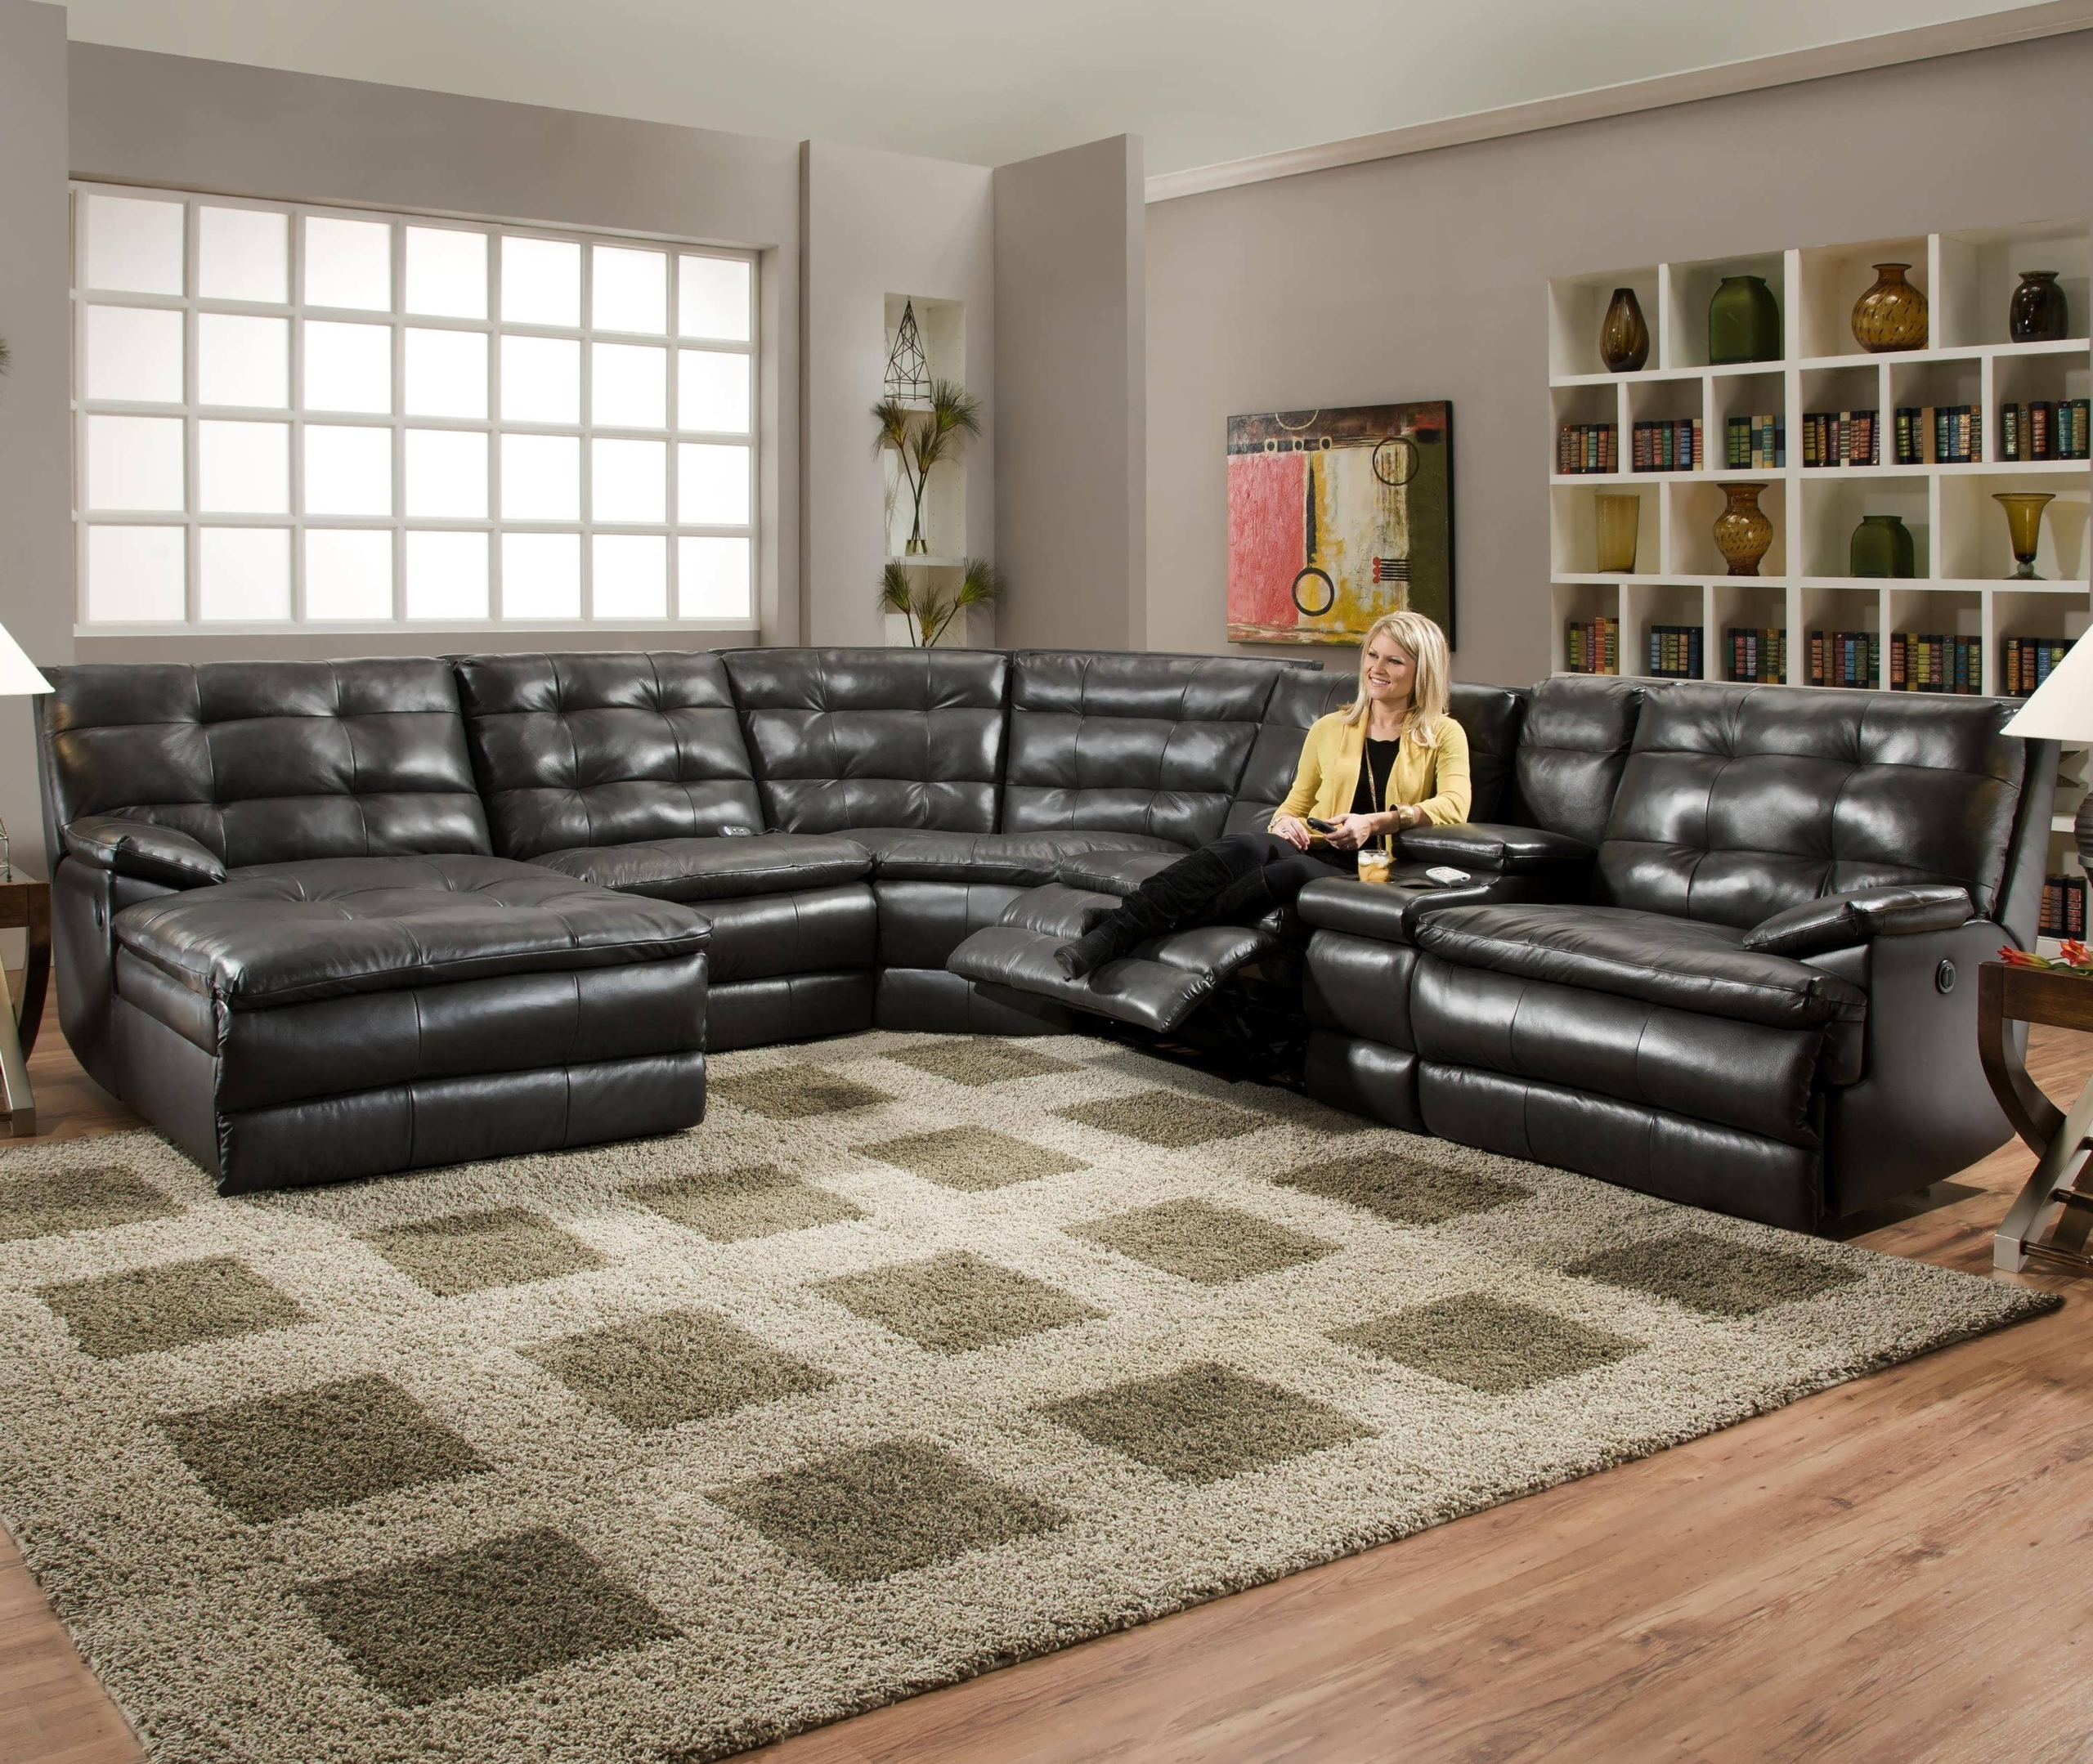 extra large sectional sofa visual hunt rh visualhunt com And Sofas www Contmporarysectionals Leather Sectional Sofas with Recliners